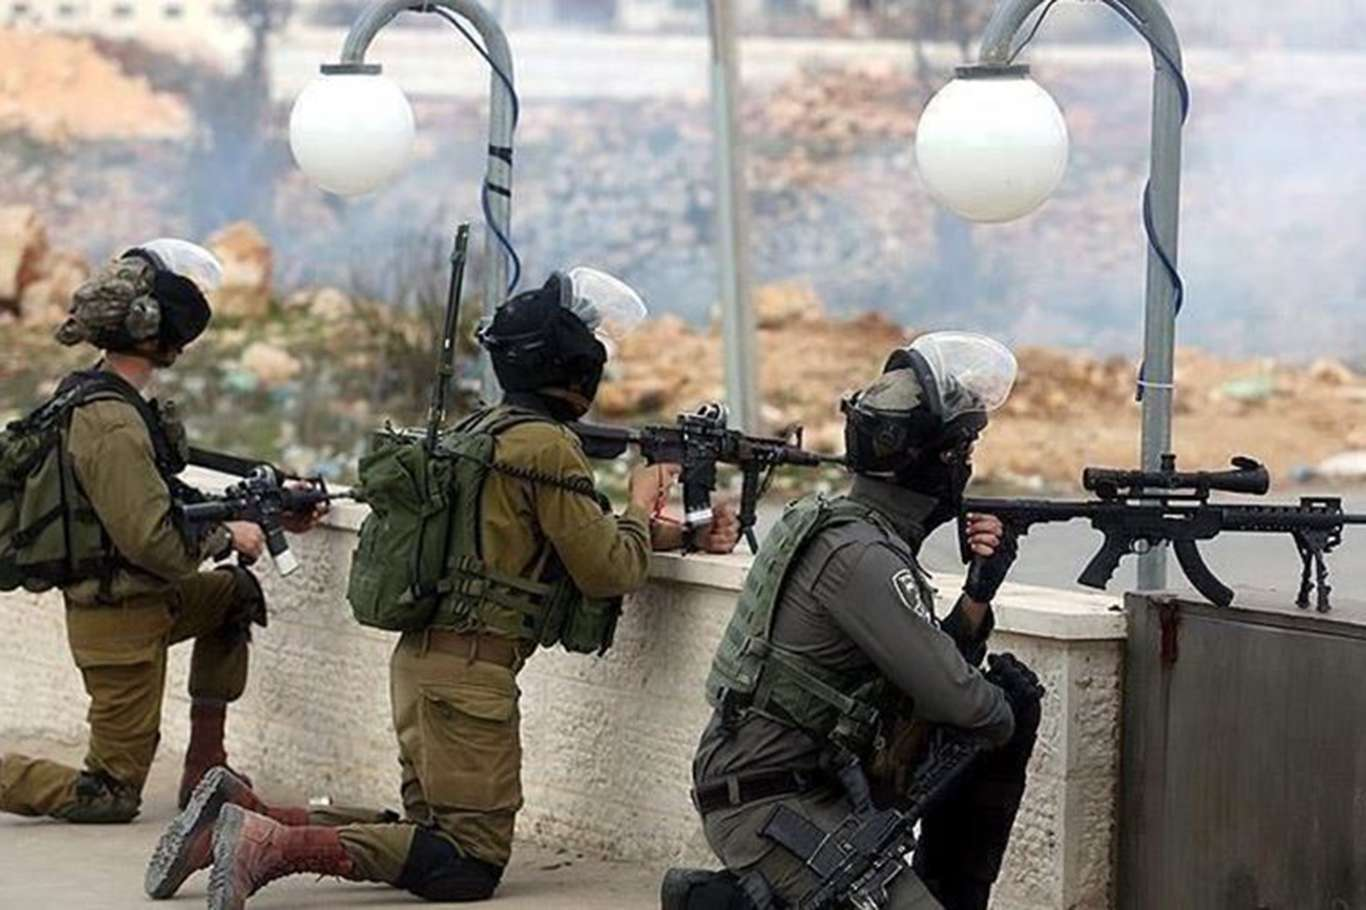 ZOF soldiers detain Palestinian child in southern Nablus